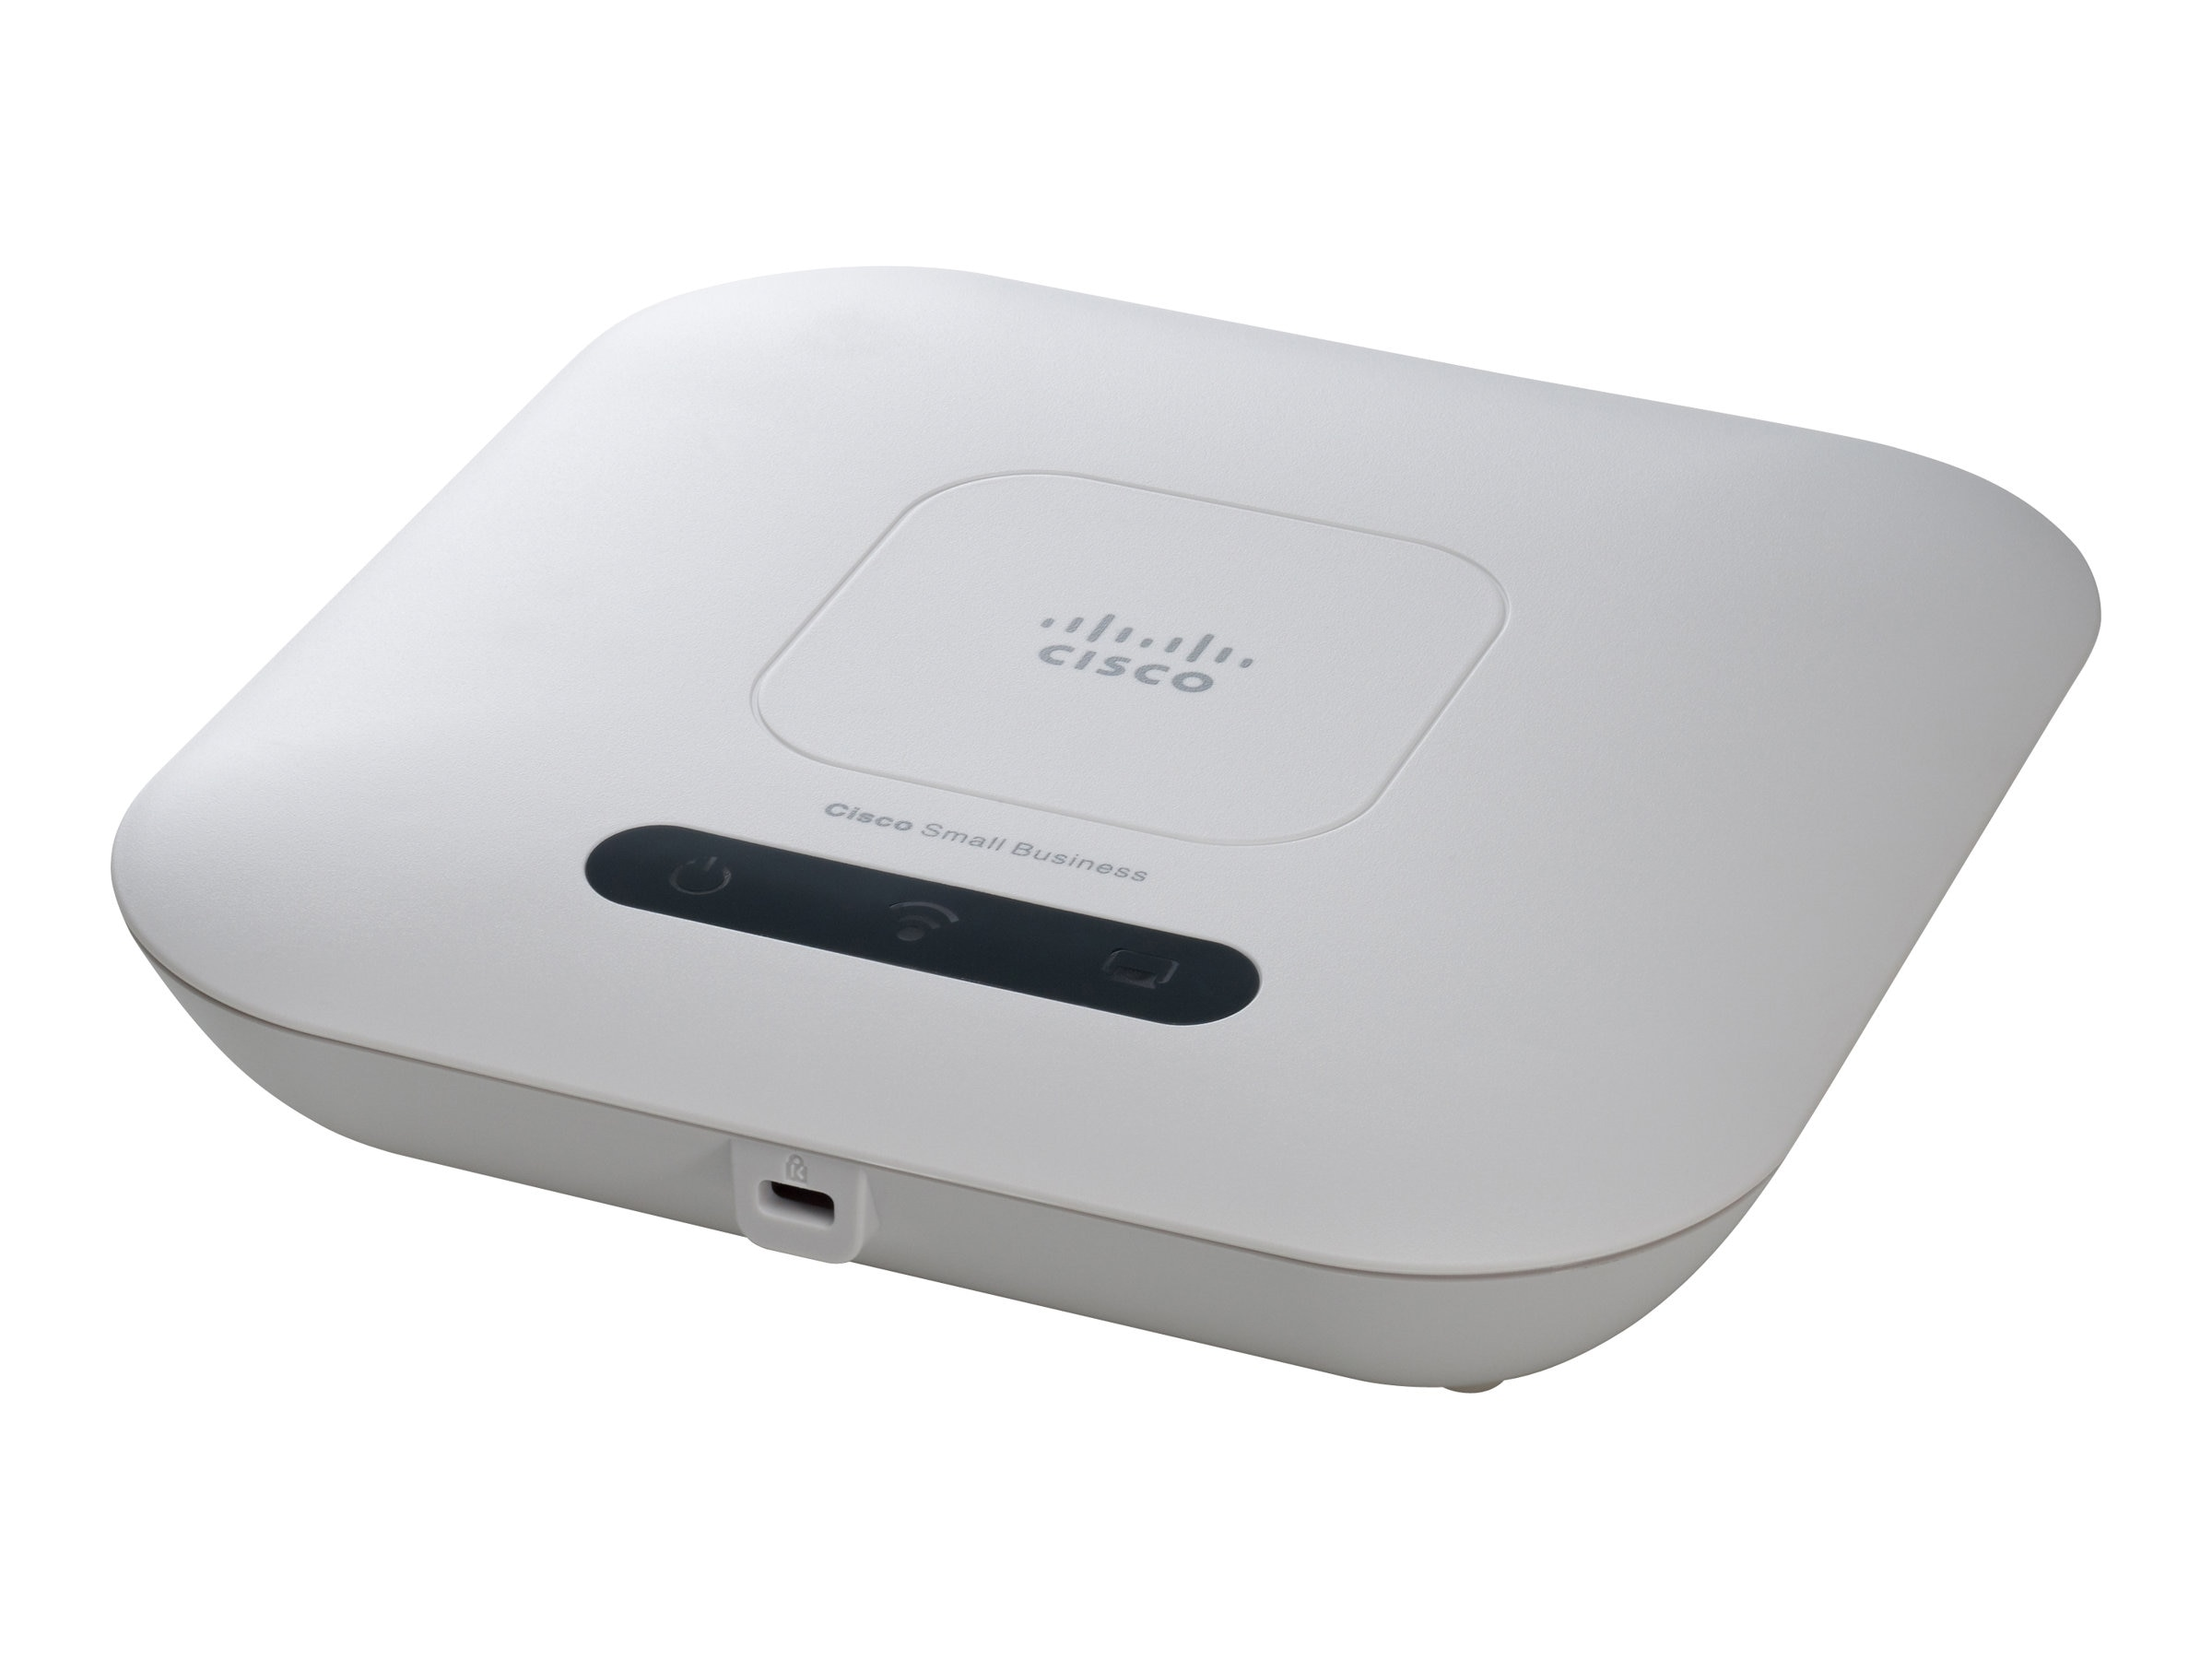 Cisco WAP321 Wireless-N Selectable-Band AP w PoE, A Domain